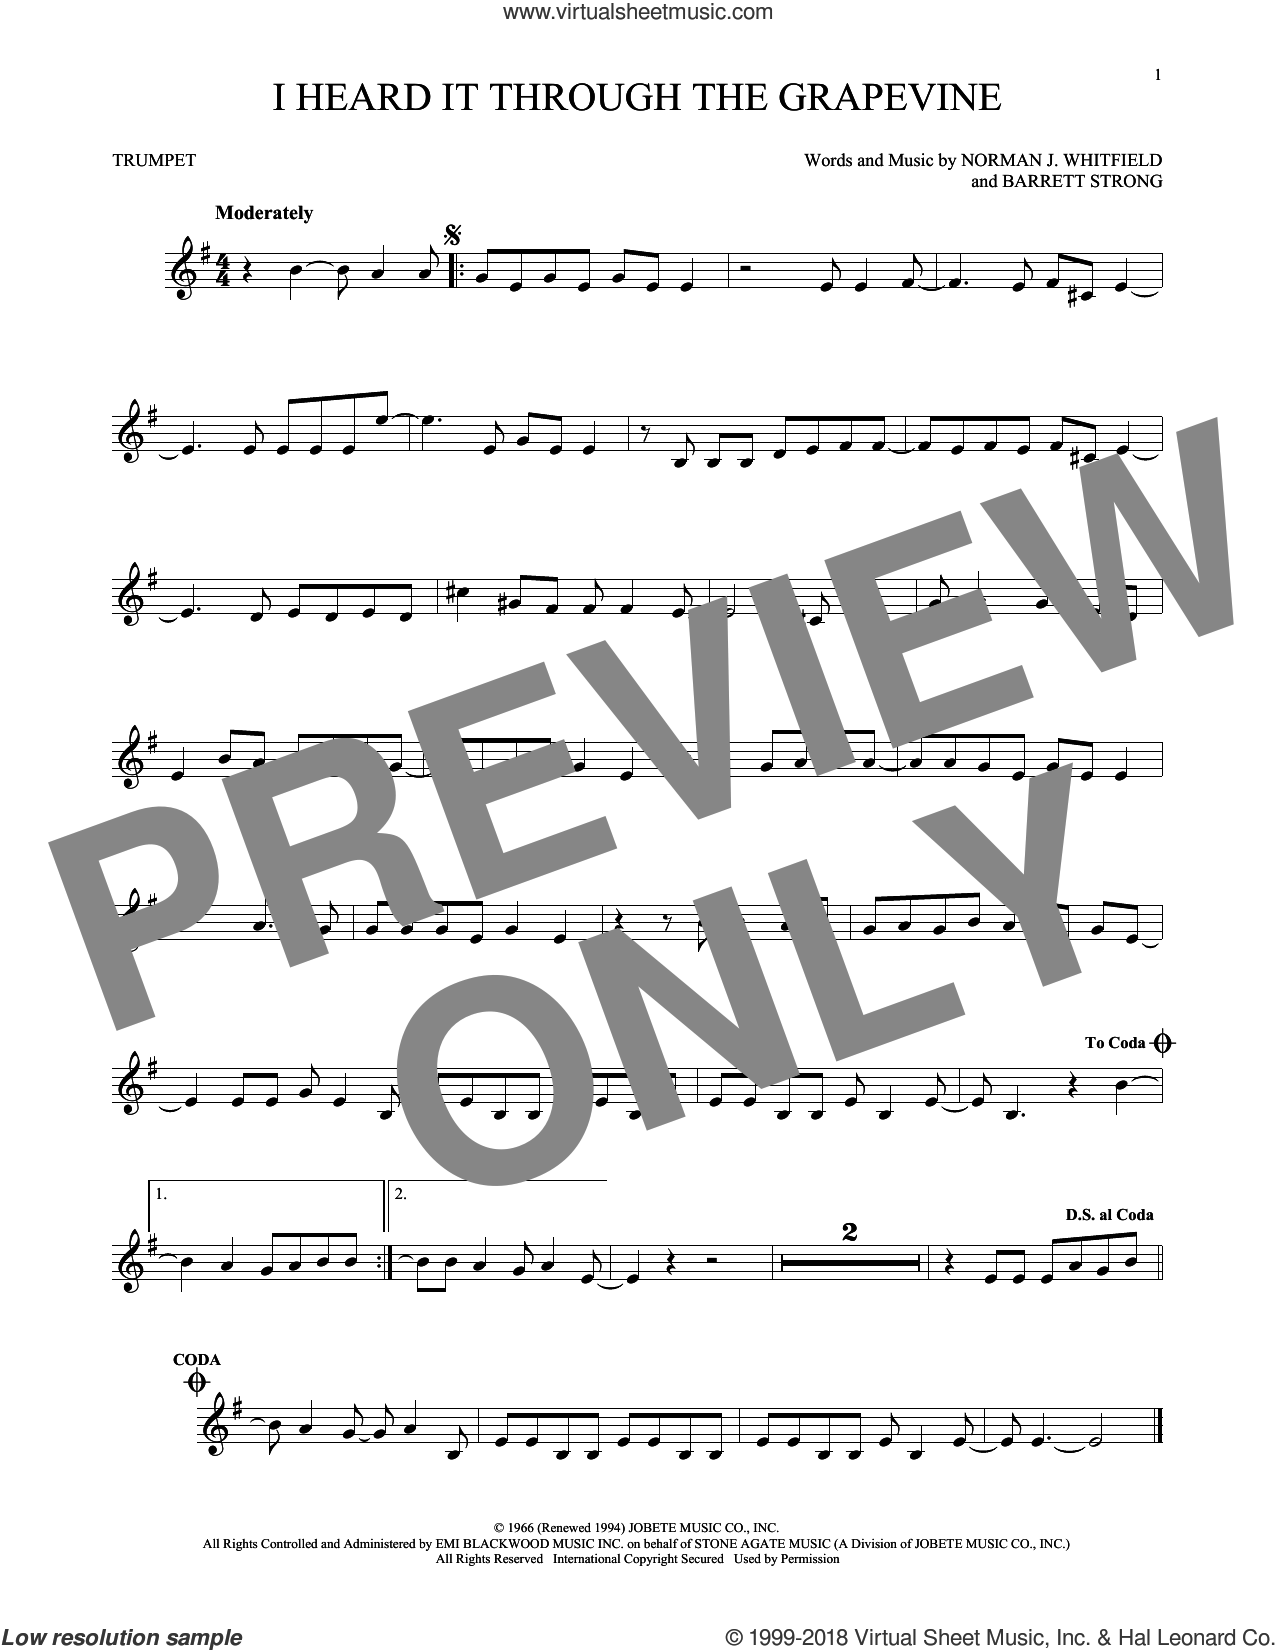 I Heard It Through The Grapevine sheet music for trumpet solo by Norman Whitfield, Barrett Strong and Norman Whitfield & Barrett Strong, intermediate skill level